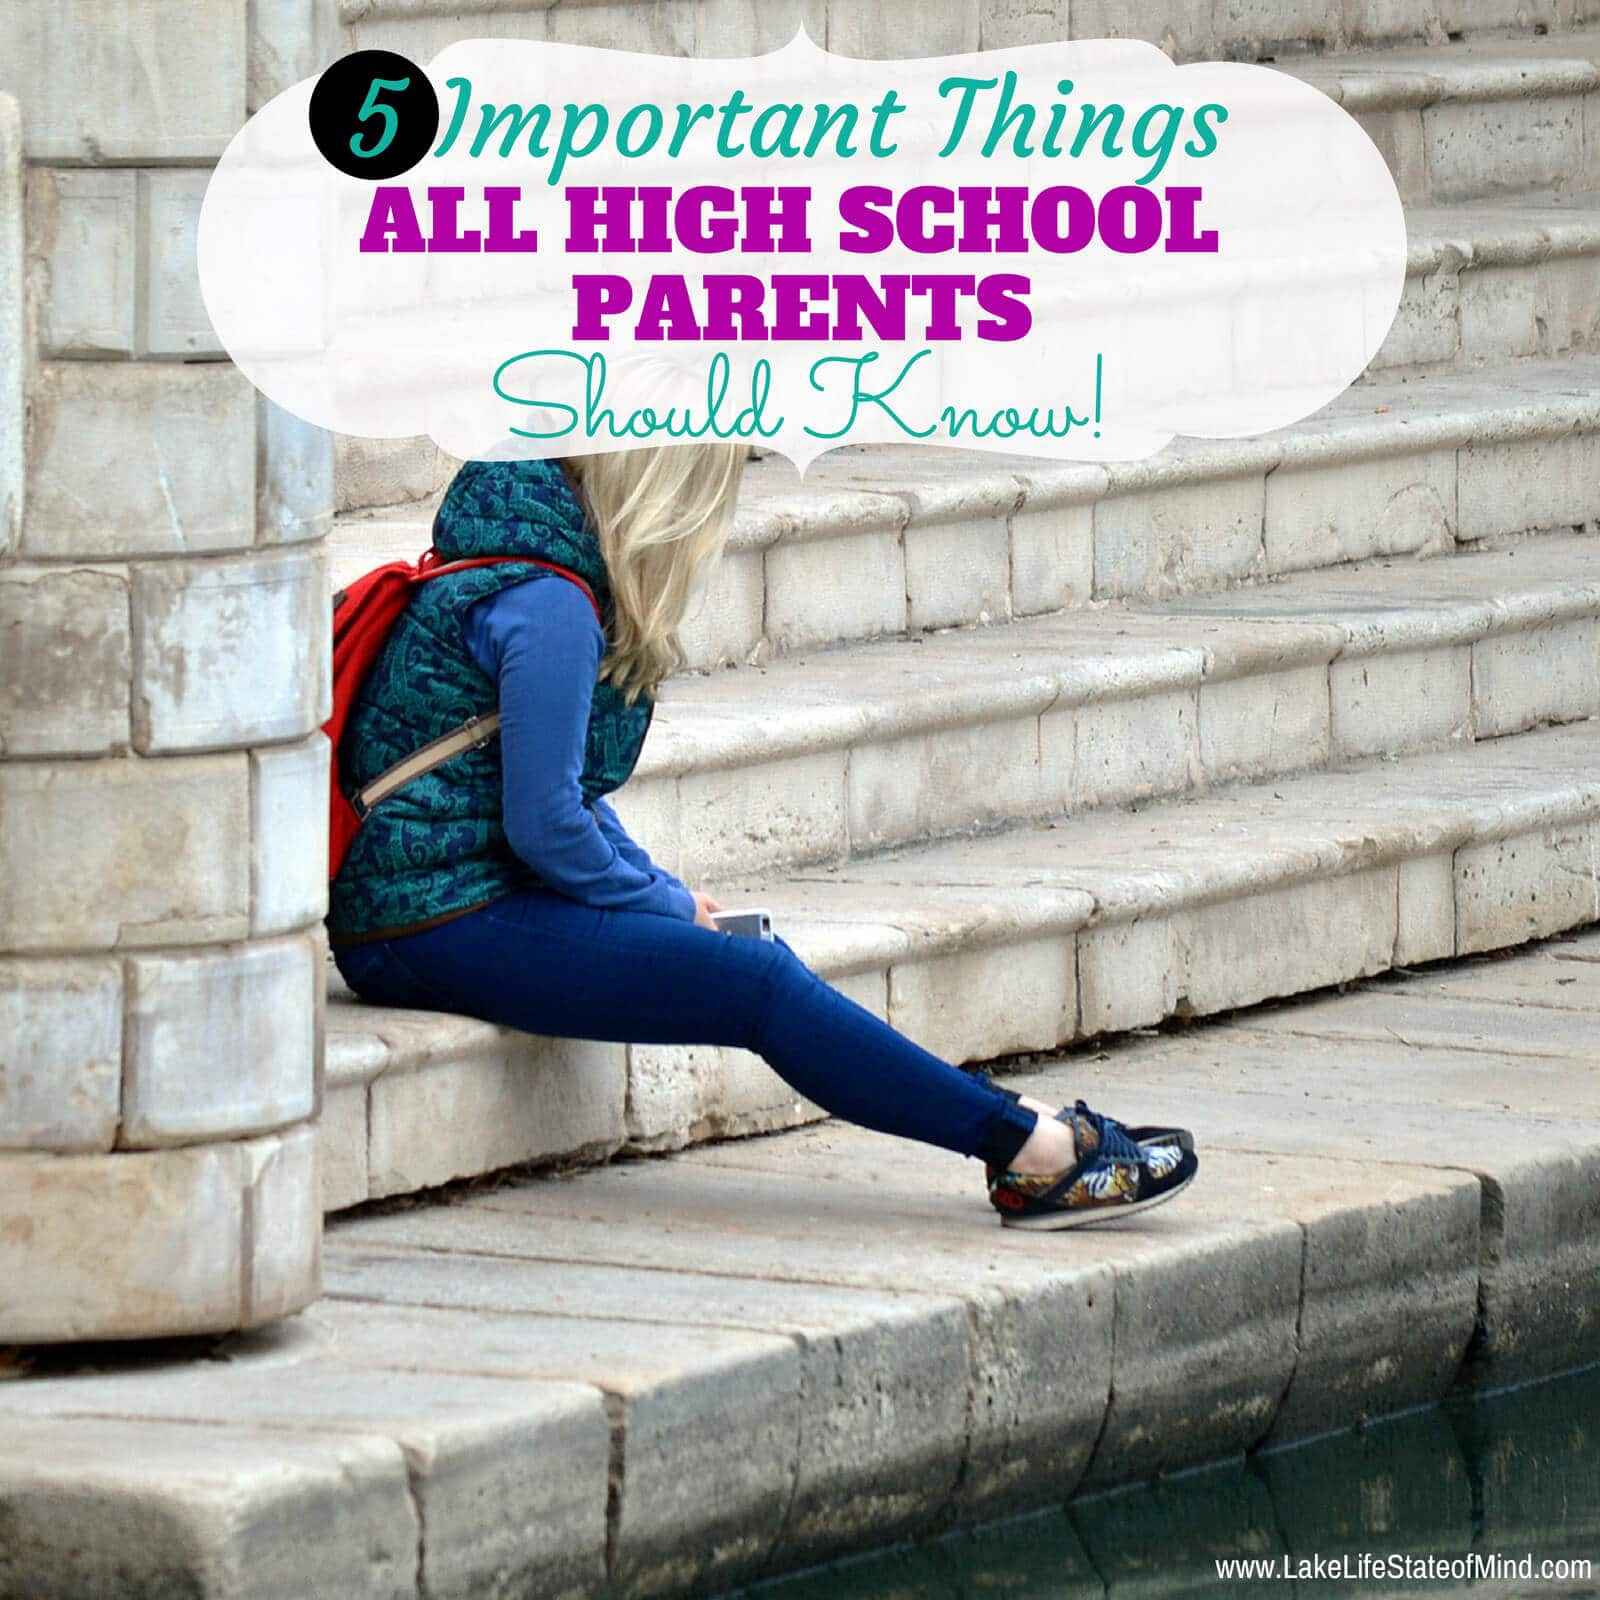 5 Important Things All High School Parents Should Know